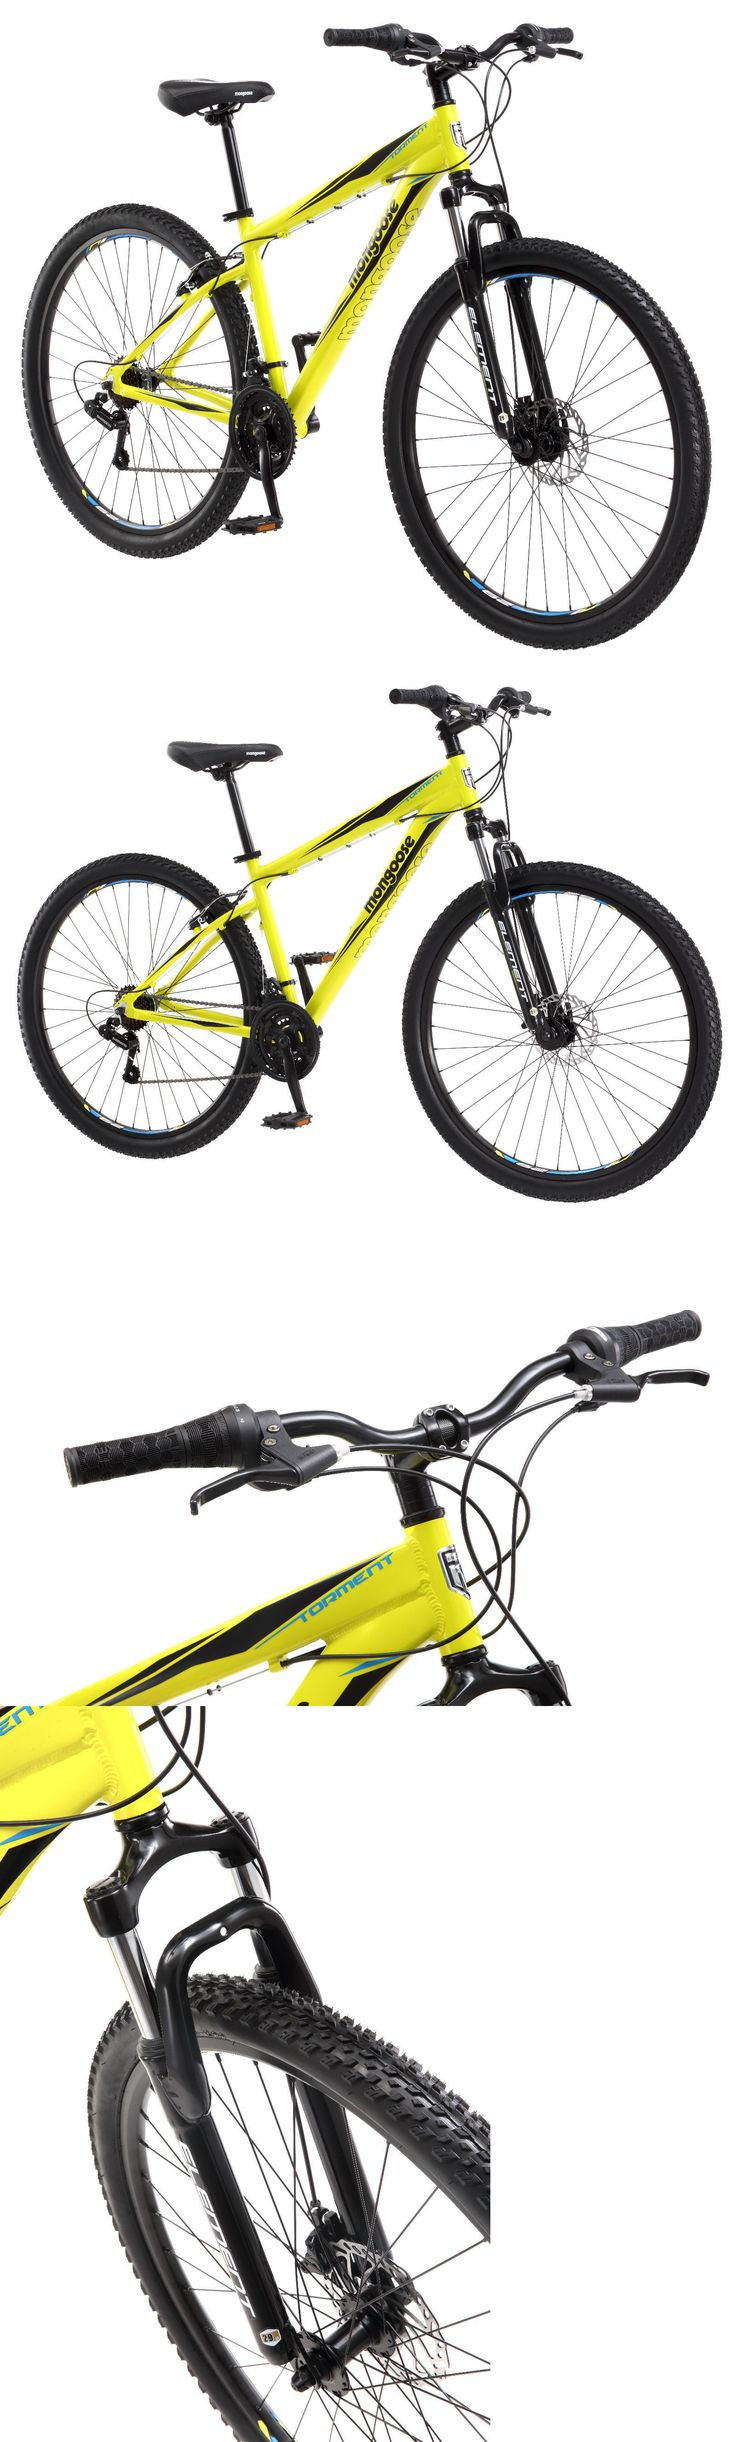 bicycles: 29 Mongoose Men S Torment Mountain Bike, Yellow -> BUY IT NOW ONLY: $169.99 on eBay!